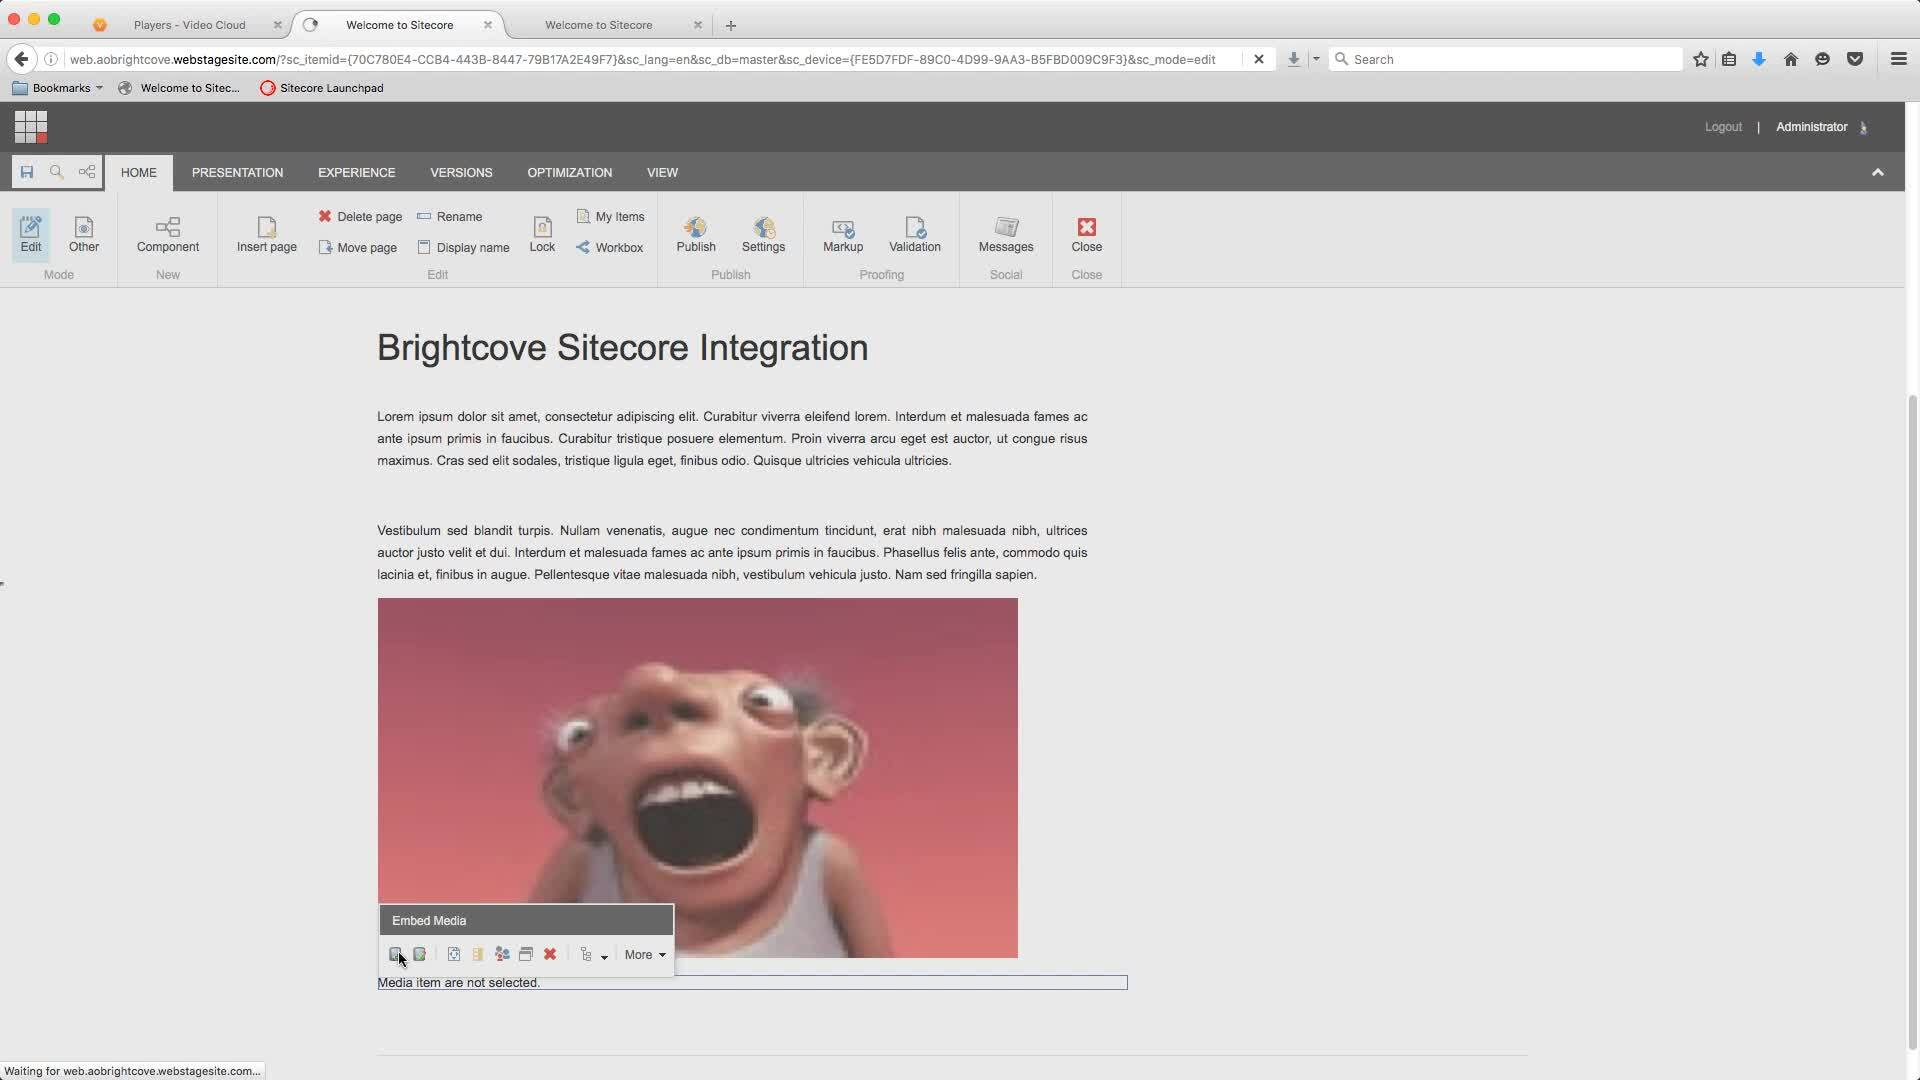 Getting Started with Brightcove Video Connect for the Sitecore